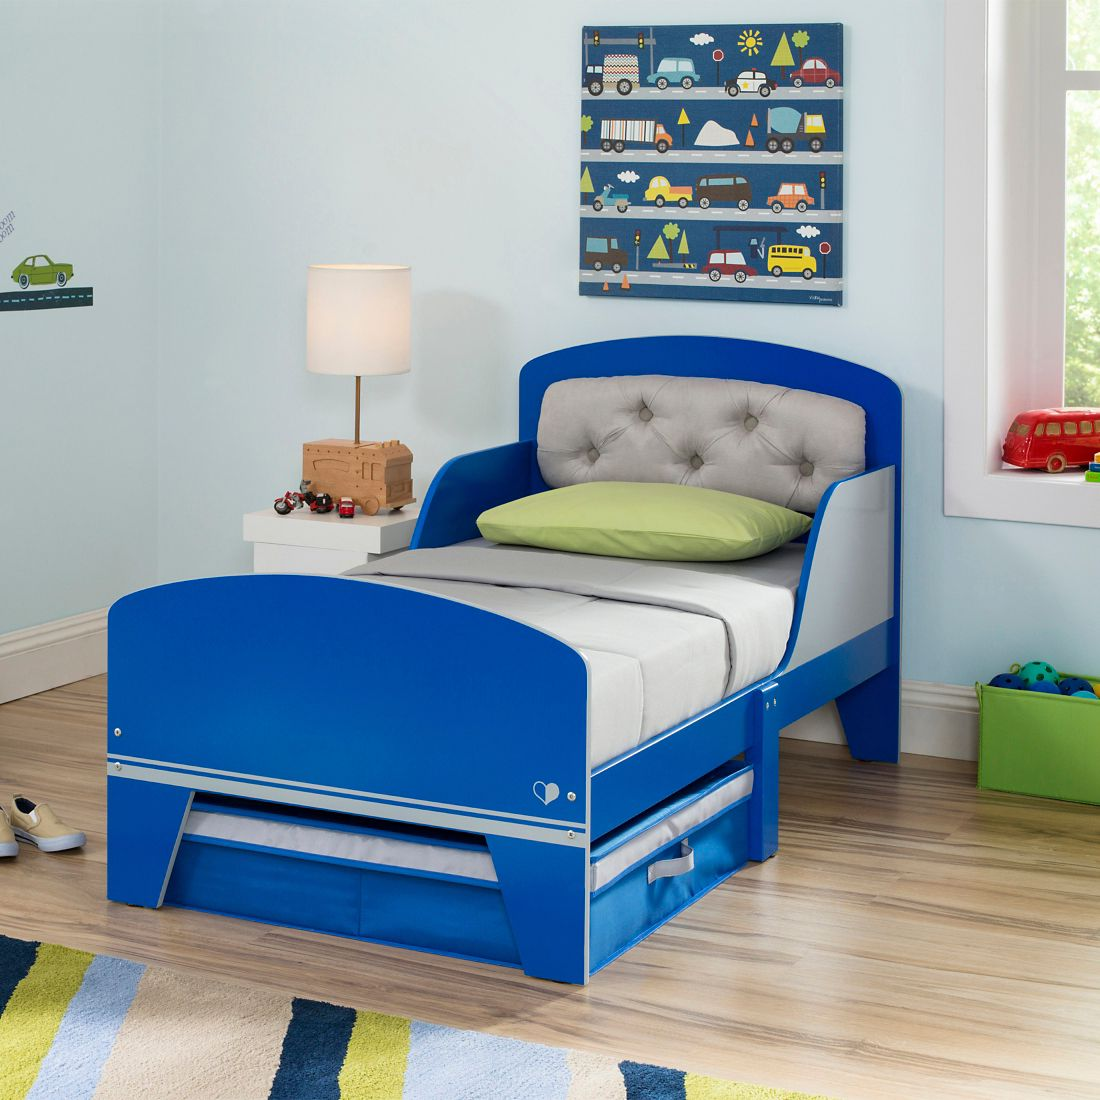 This Darling Jack Jill Toddler Bed Features A Tufted Upholstered